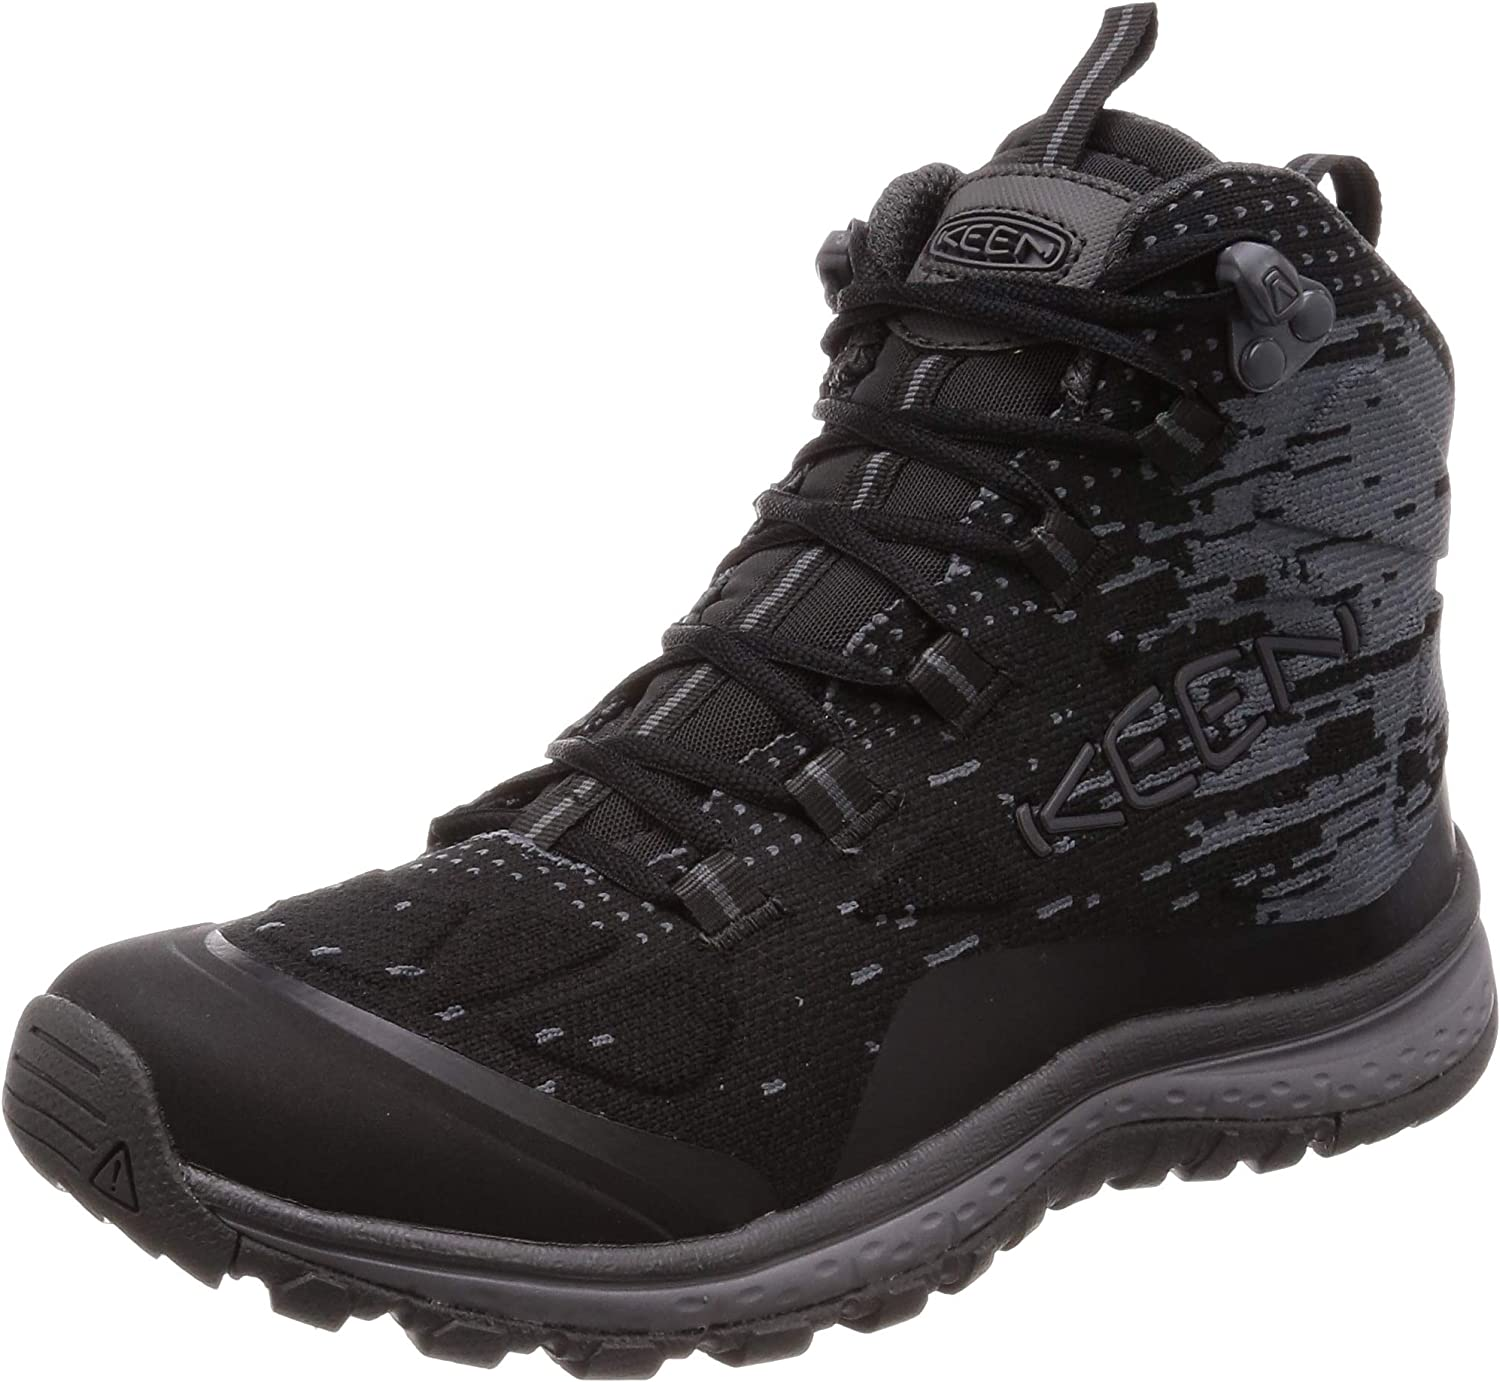 KEEN Women's Terradora Evo Mid Hiking Boot